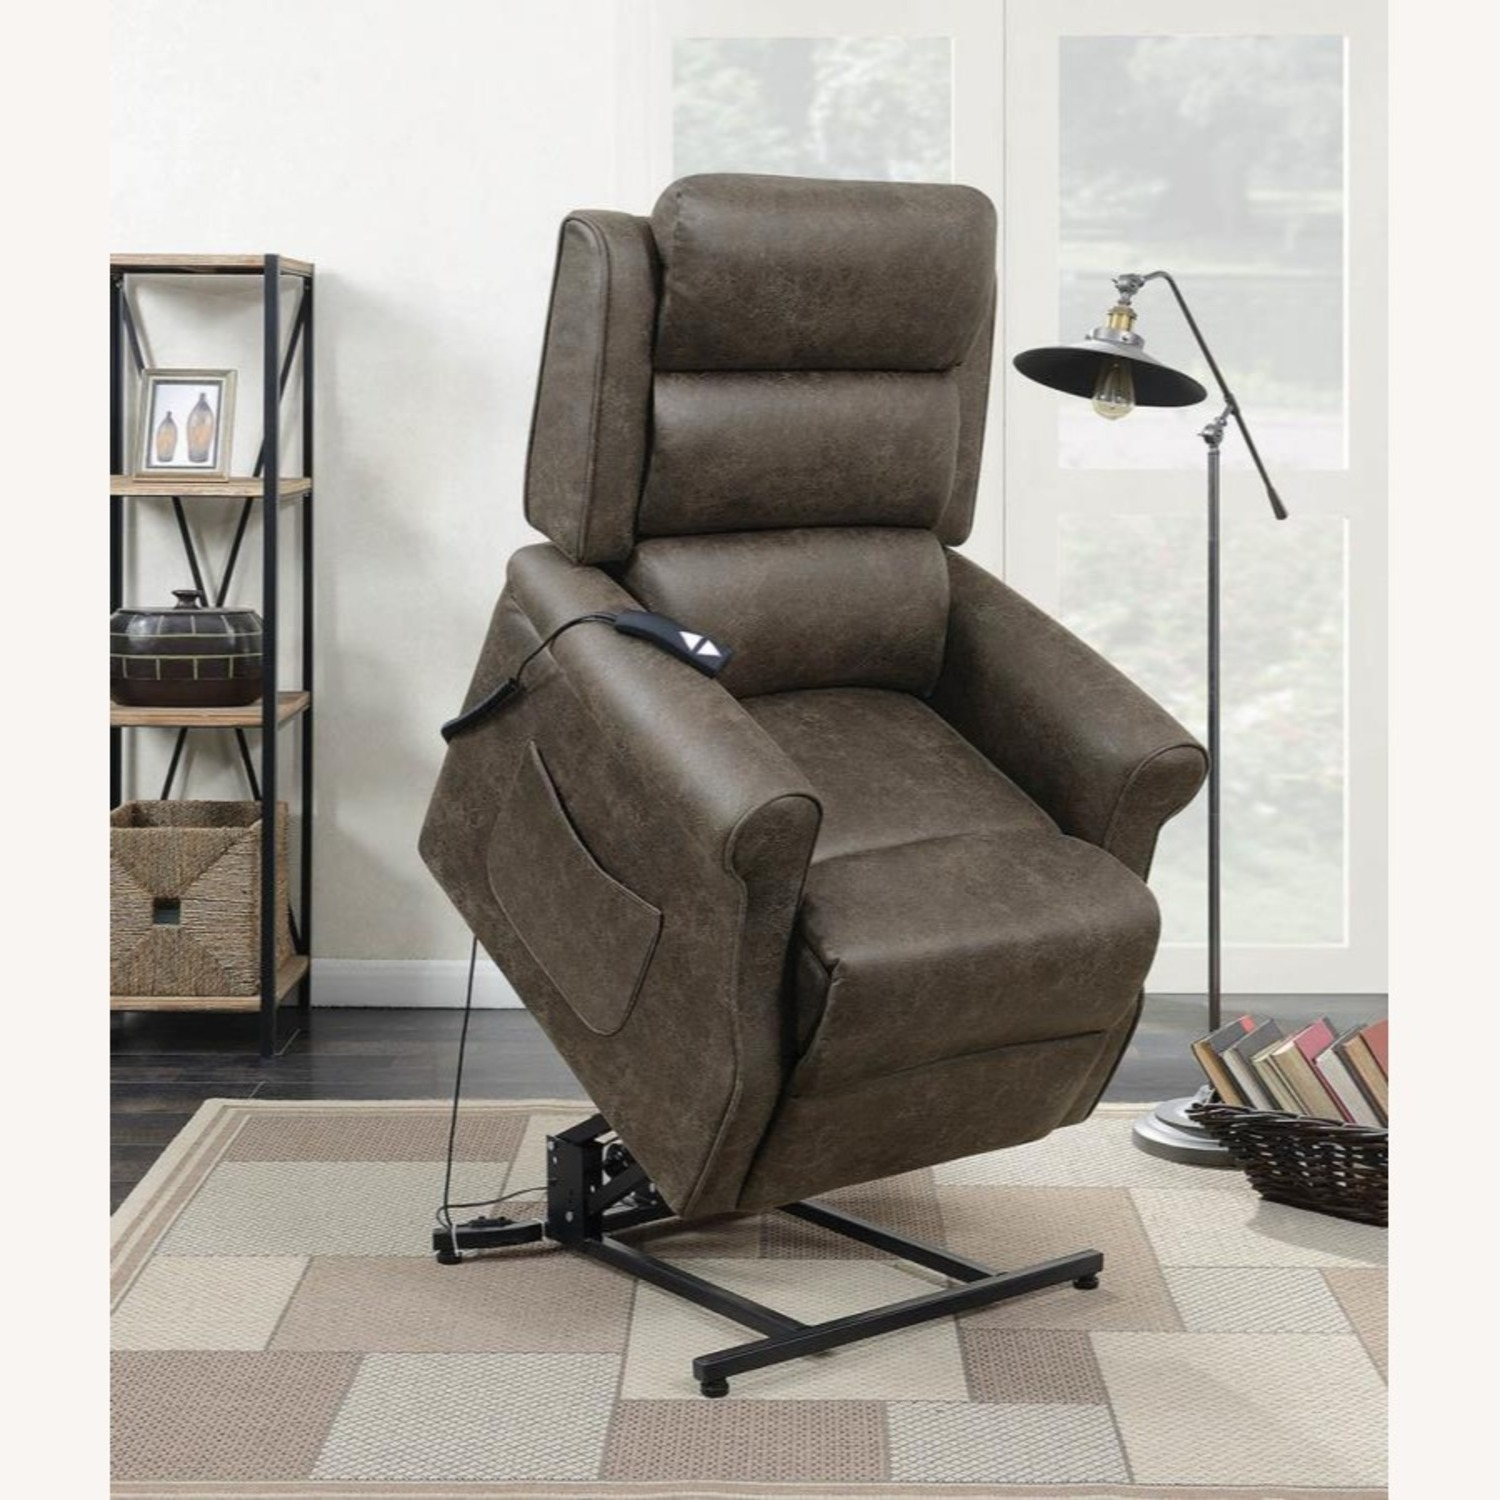 Power Lift Recliner In Brown Faux Suede Upholstery - image-6